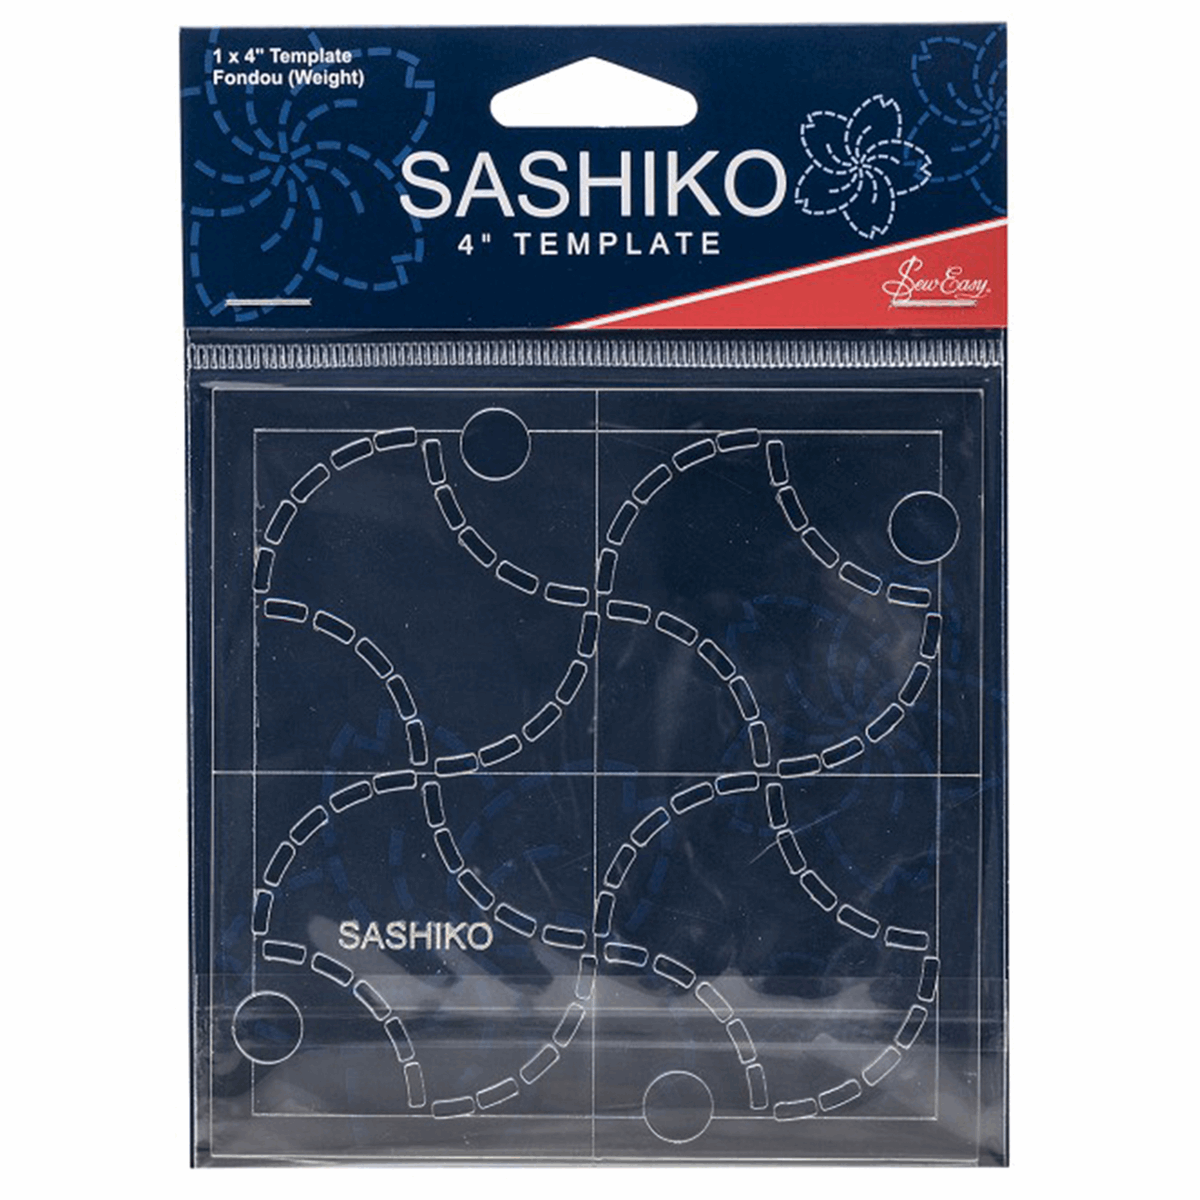 Picture of Sashiko: Template: 4in: Fondou (Weights)